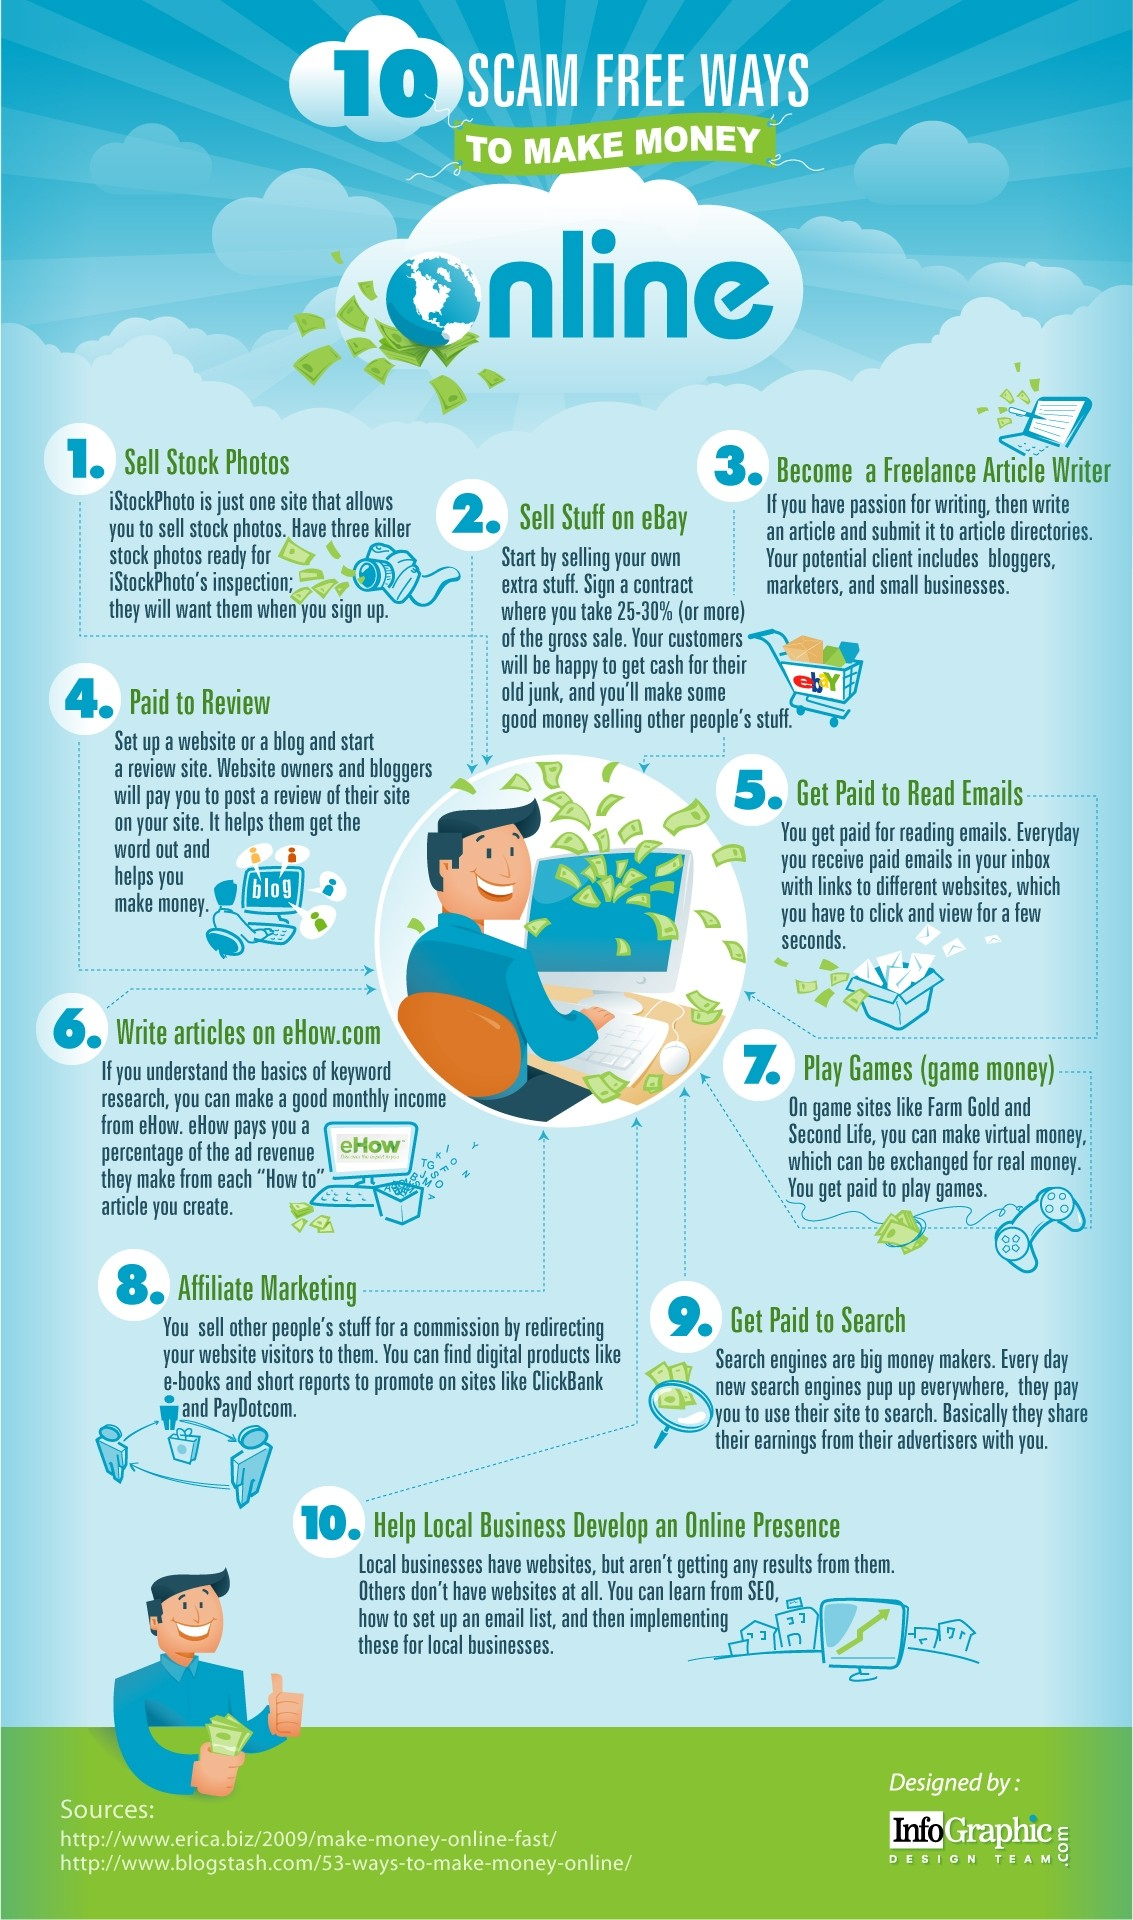 10 Scam Free Ways to Make Money Online - #infographic